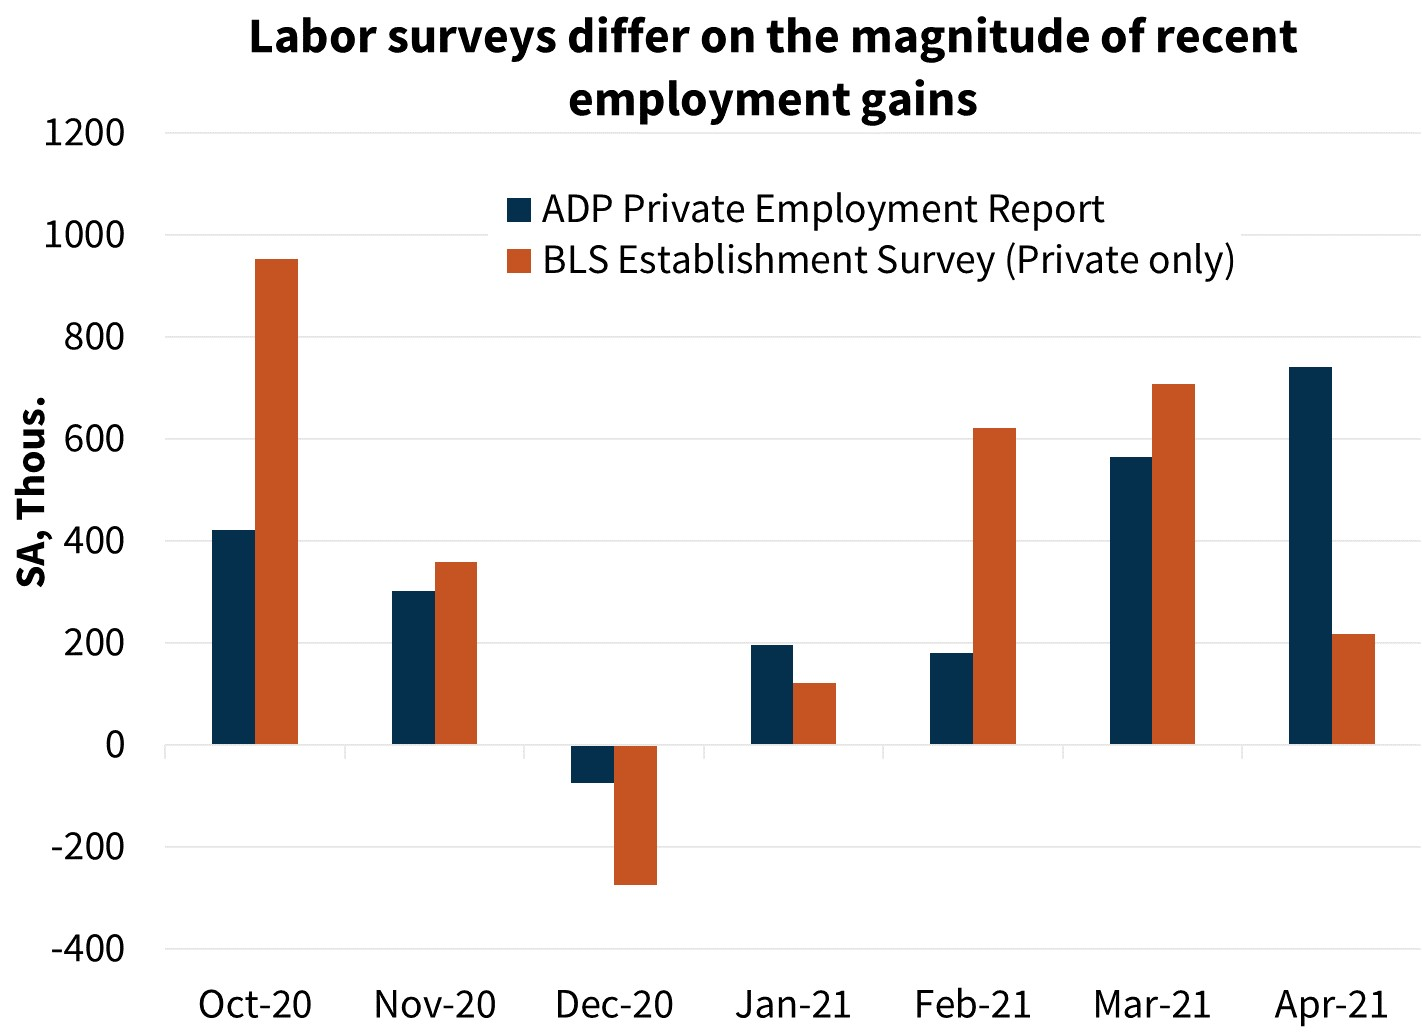 Labor surveys differ on the magnitude of recent employment gains